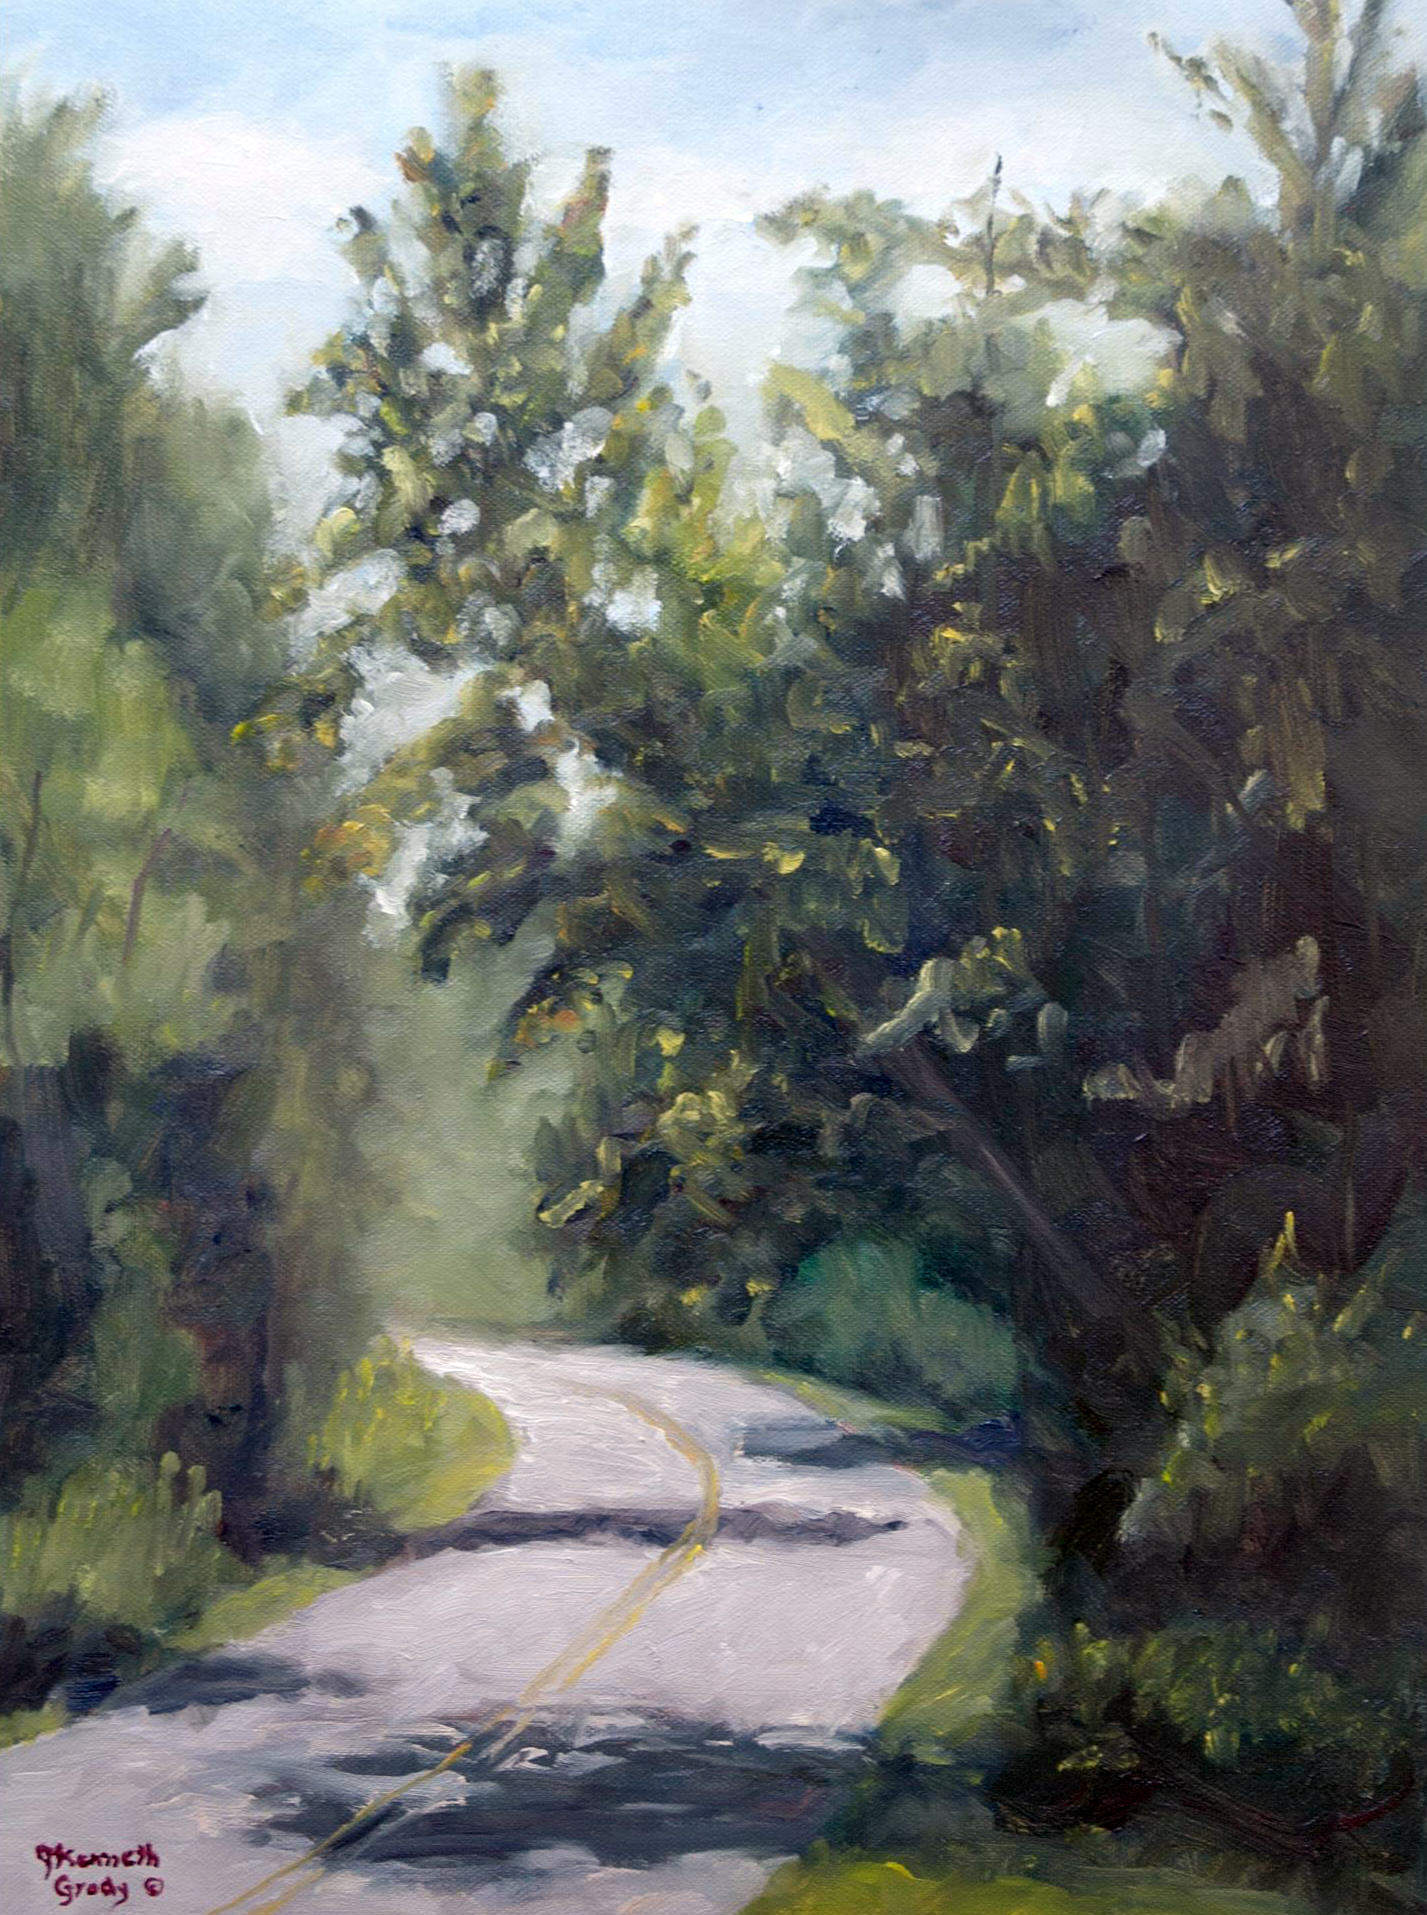 James Grody | CAESARS CREEK TRAIL | oil on mounted canvas | 11x16